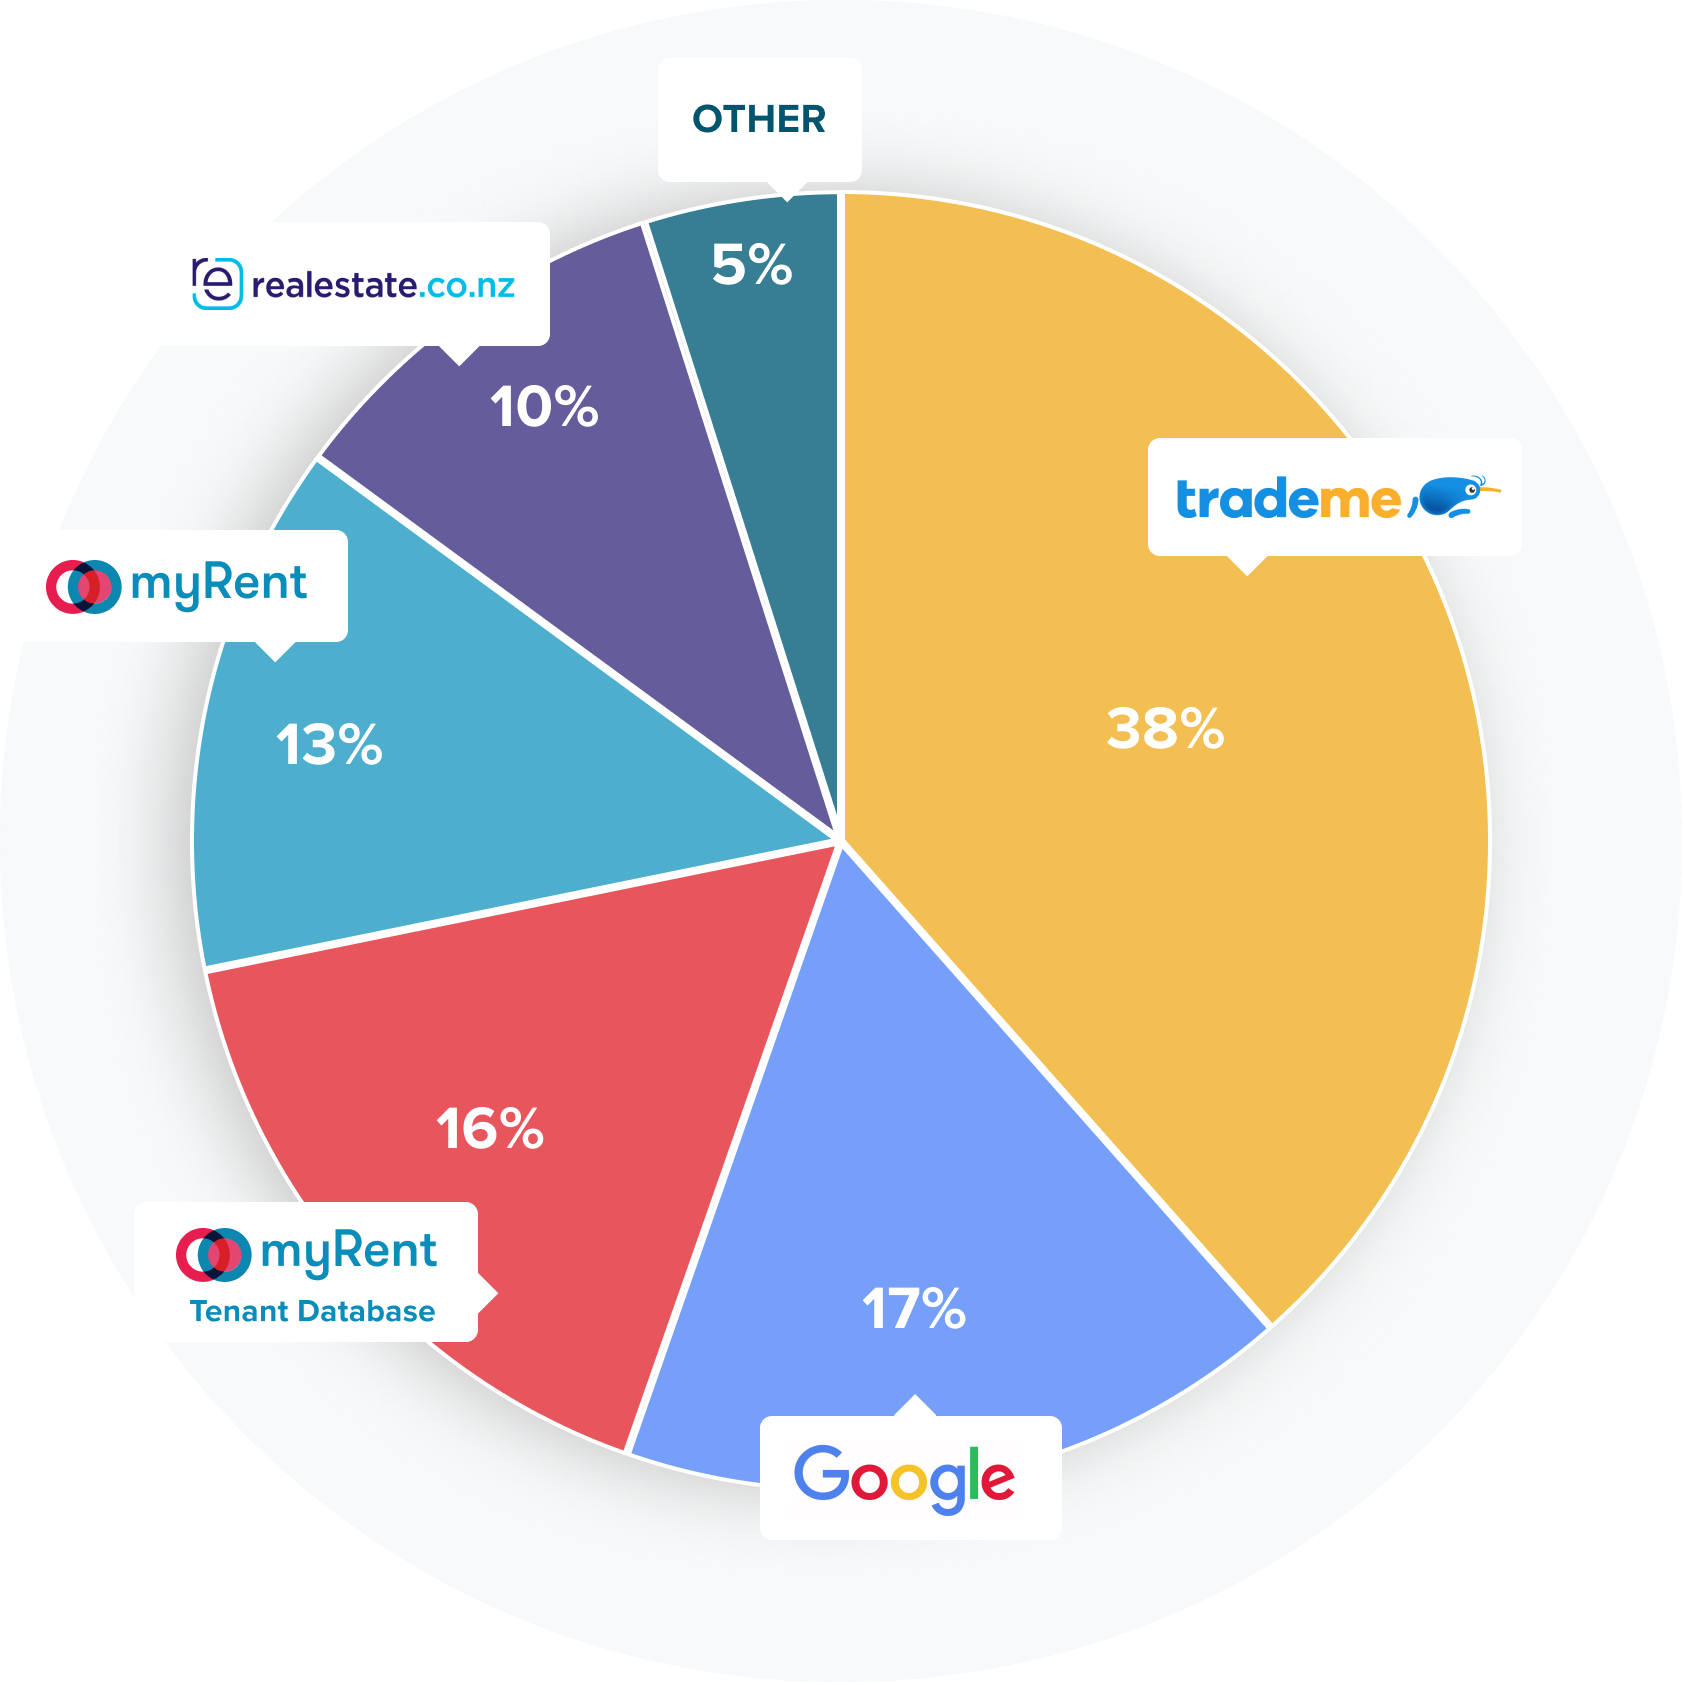 Pie chart of where listing enquiries come from: 44% from Trade Me, 22% from Facebook, 20% from myRent, 10% from realestate.co.nz, 4% from OneRoof